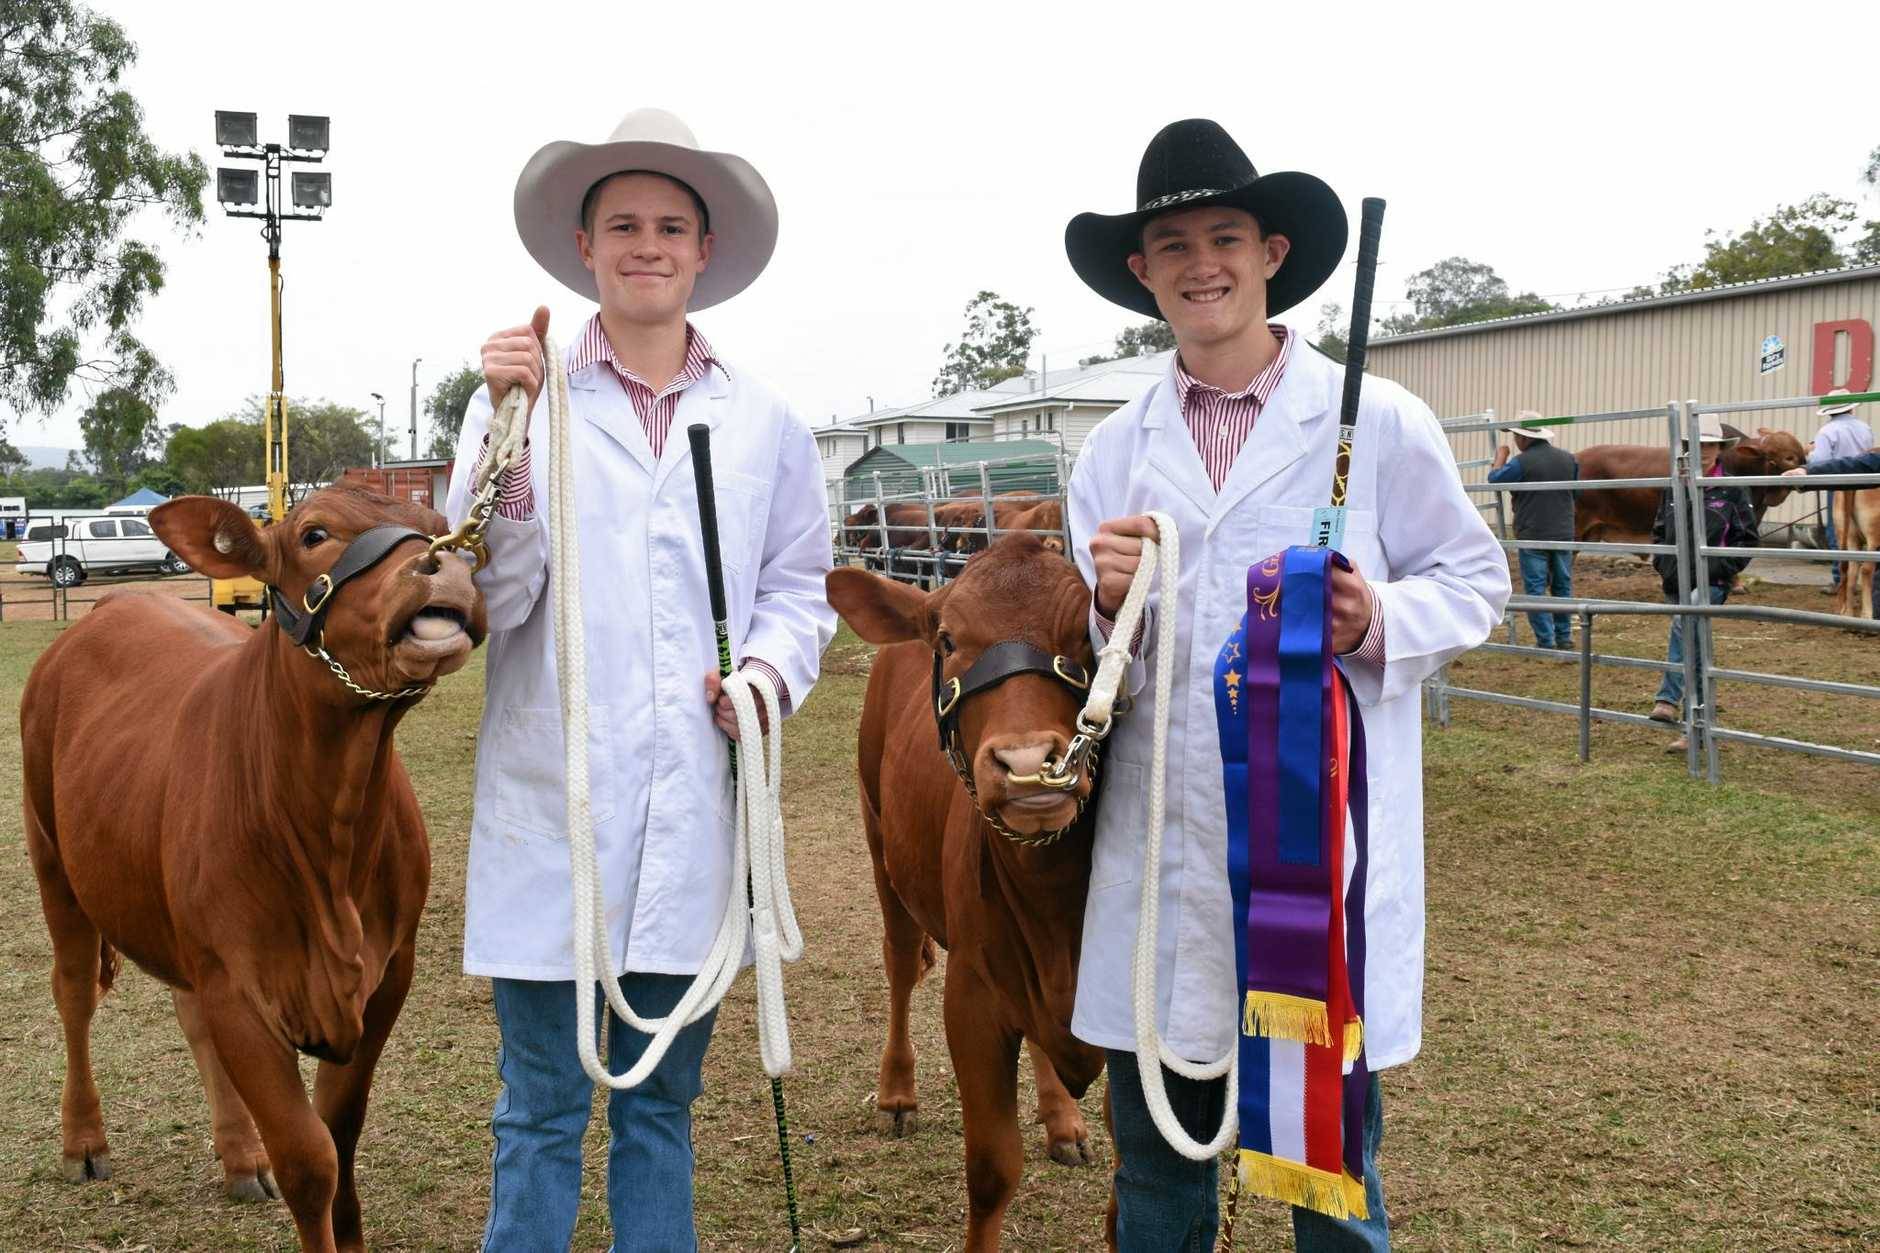 SHOW DAY: Ipswich Grammar students Mitchel Klein with Sinai Bridget and Nocholas Raine with Sinai Bernadette at the Gatton Show. Insets top: Jack Gallagher (left) and Kyron Lyndenmayer were ready for the weather. Inset bottom: Jason and Gwenda Malcolm travelled from Ipswich to check out the Gatton Show.